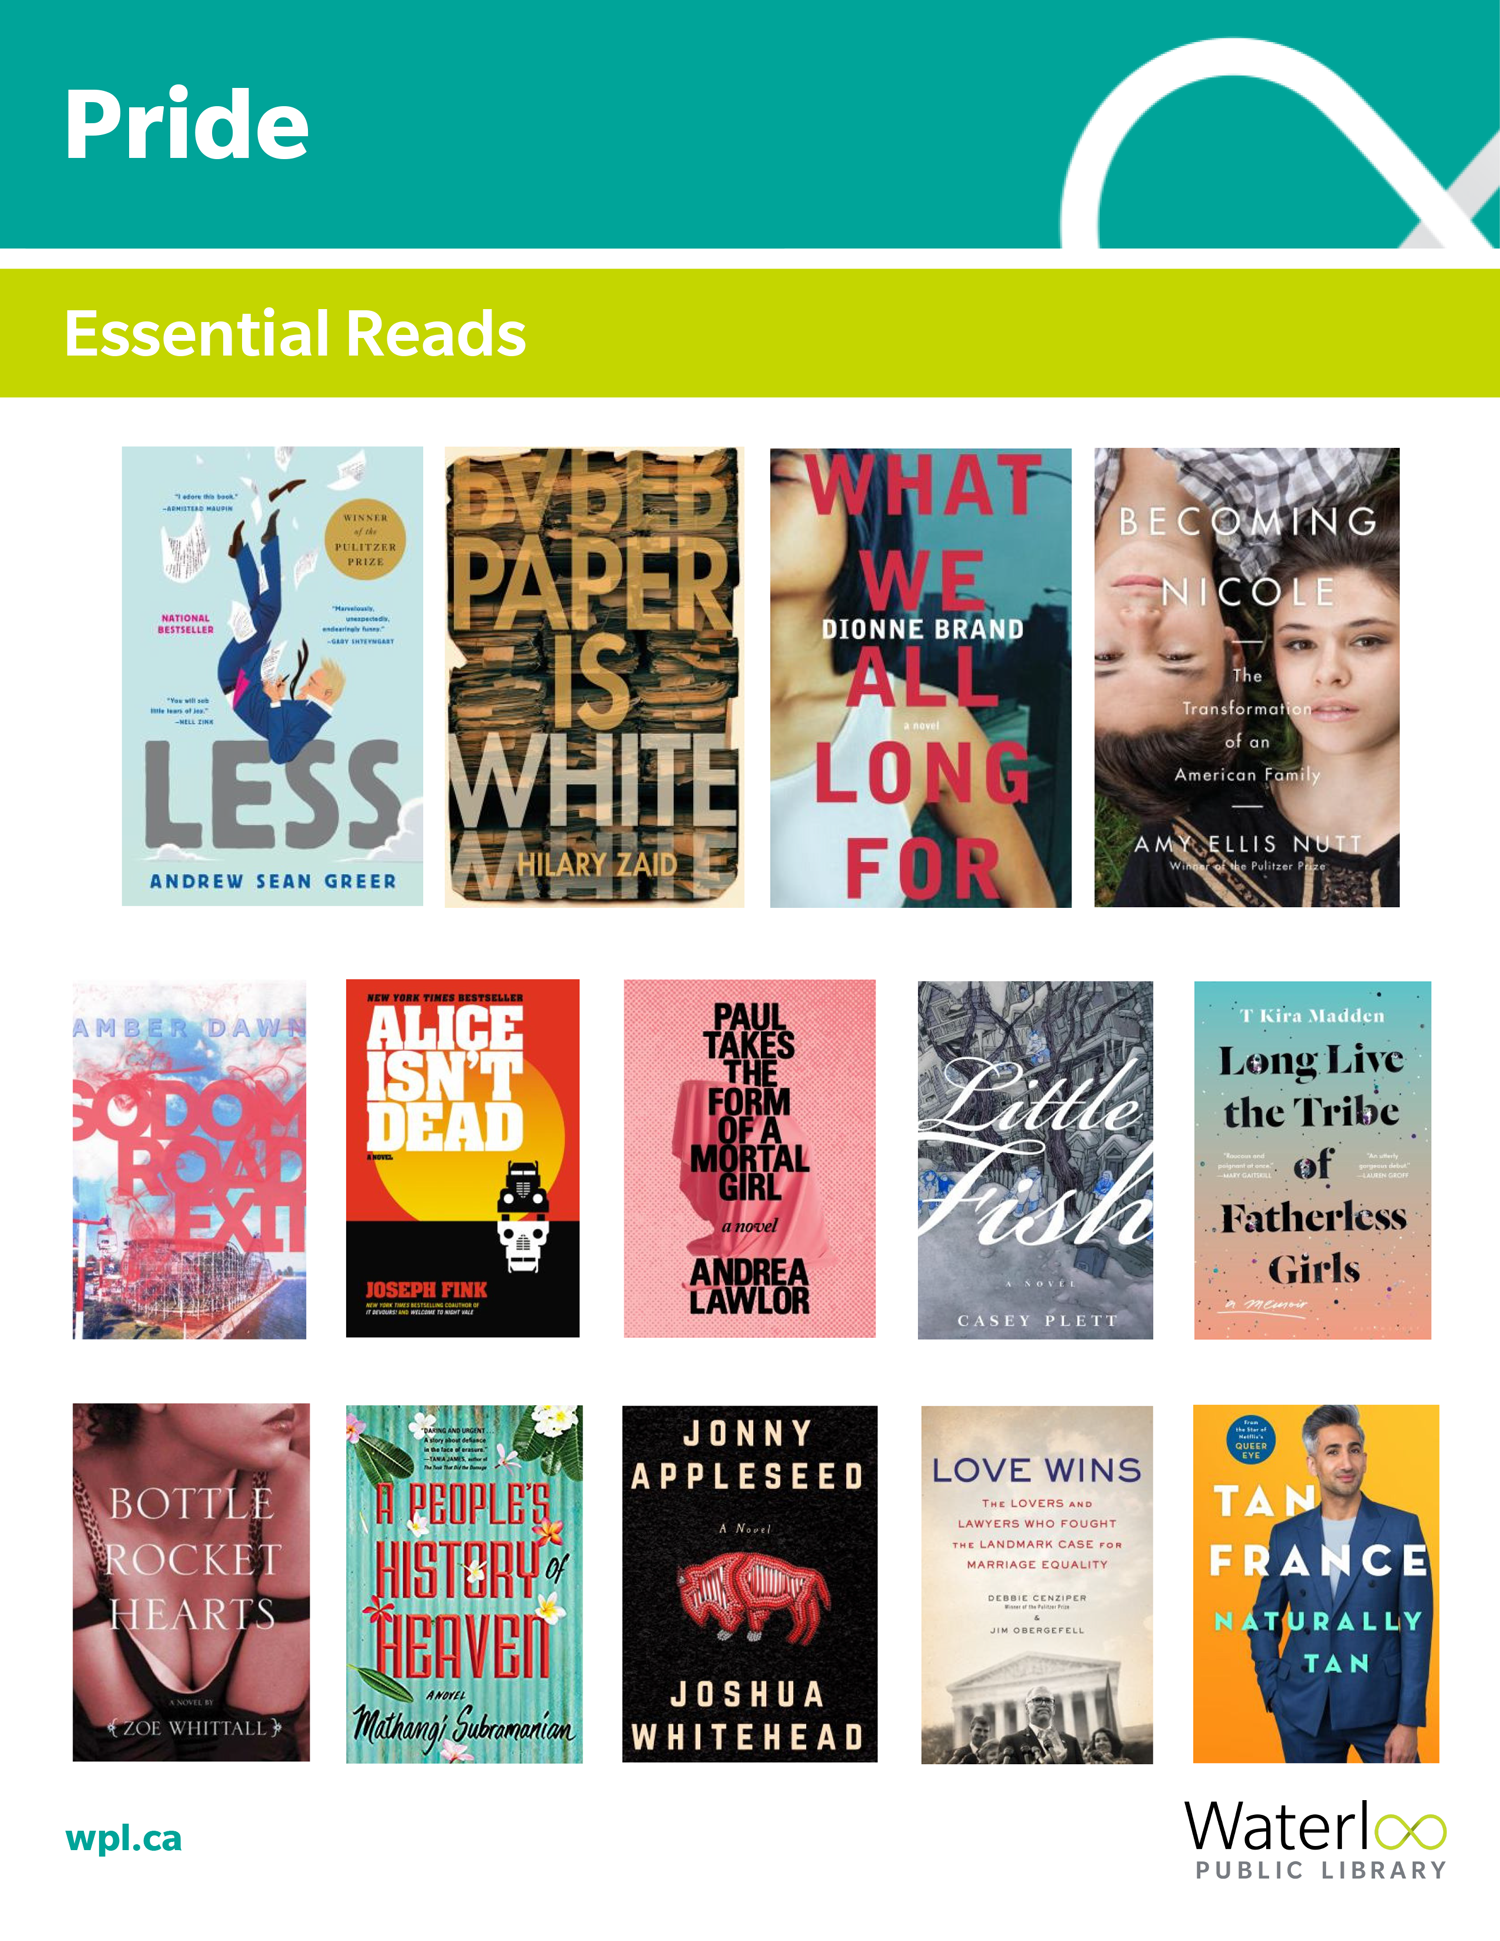 Pride 2019 - Books for Adults